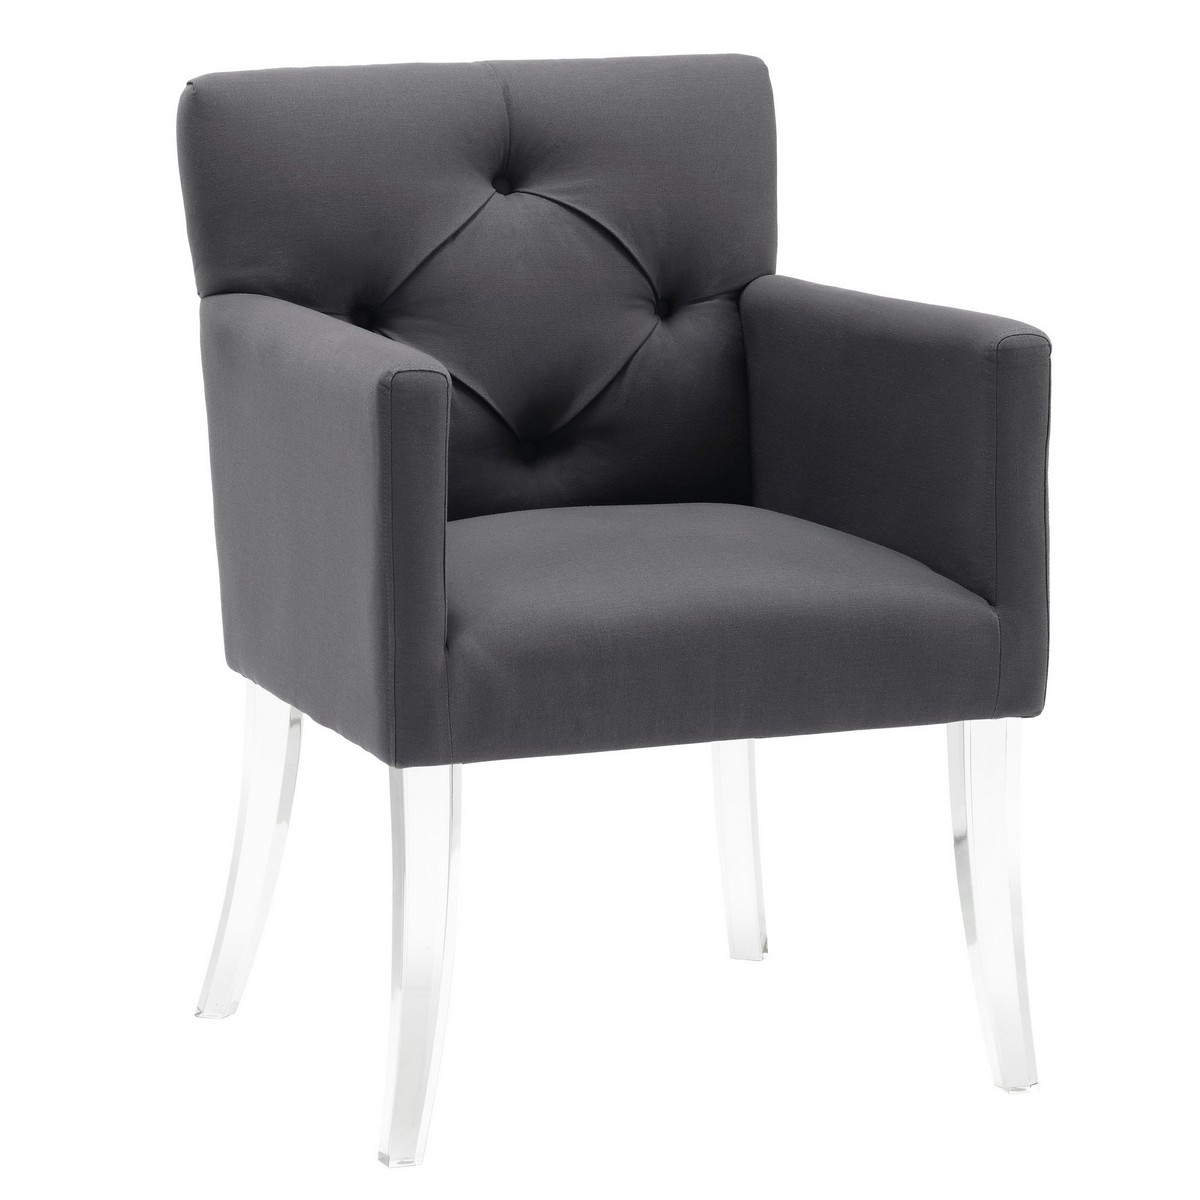 acrylic chairs with cushions owl chair for kids tov furniture lafayette grey linen a99 at